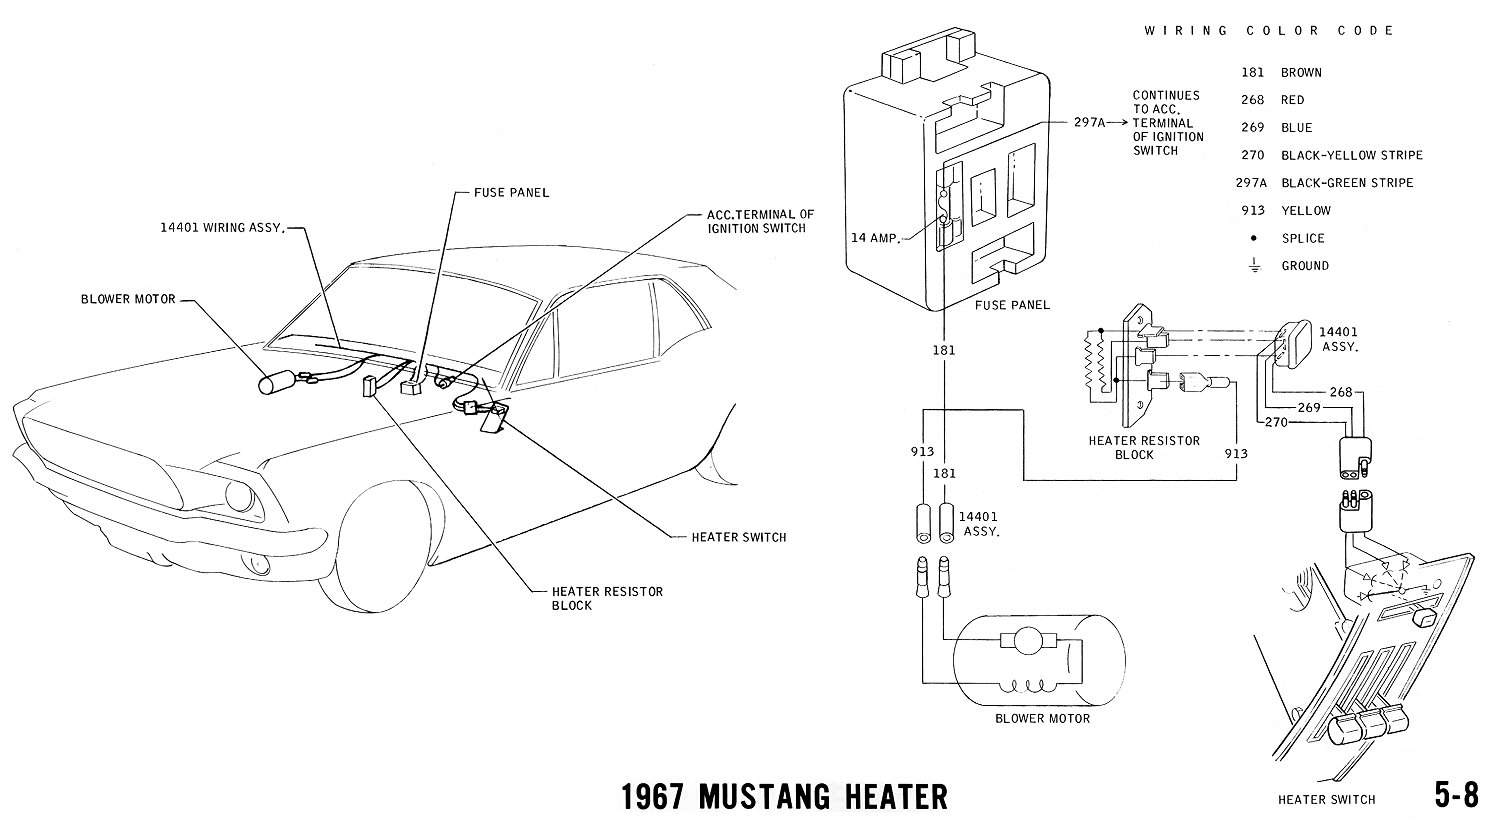 1967 Mustang Wiper Motor Wiring Diagram Land Gm Switch 1966 Simple Page Mopar